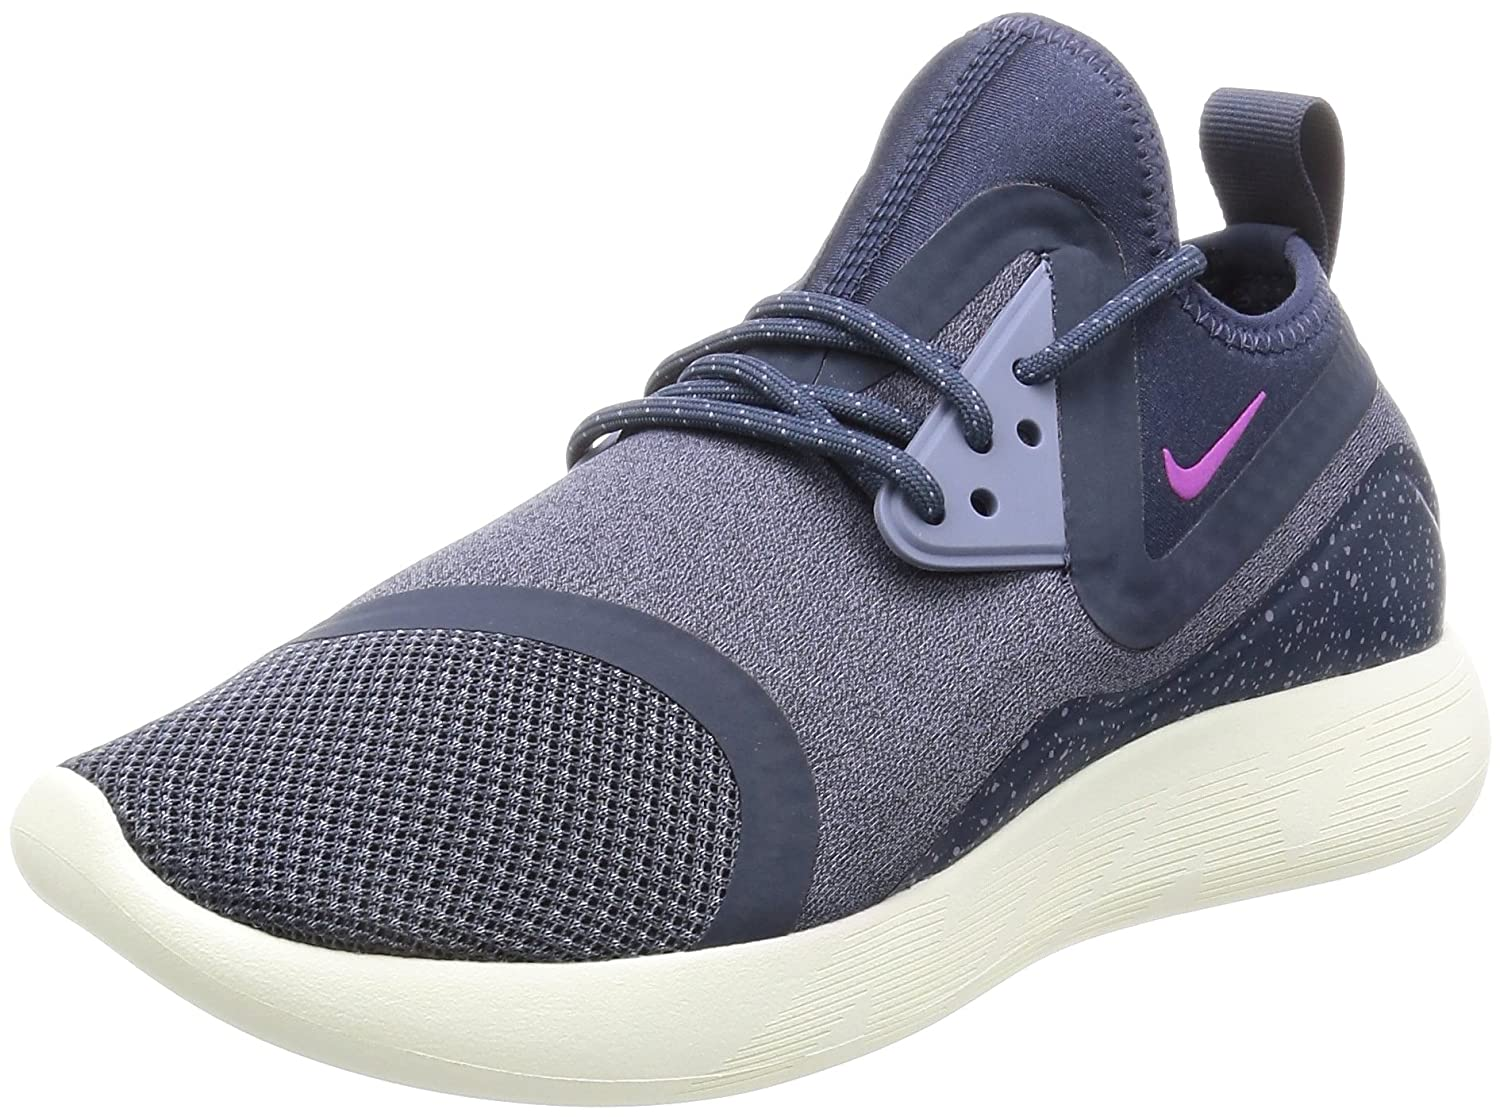 NIKE Lunarcharge Essential Womens Running Shoes B071VC8PDL 10 B(M) US|True Blue/Hyper Verde